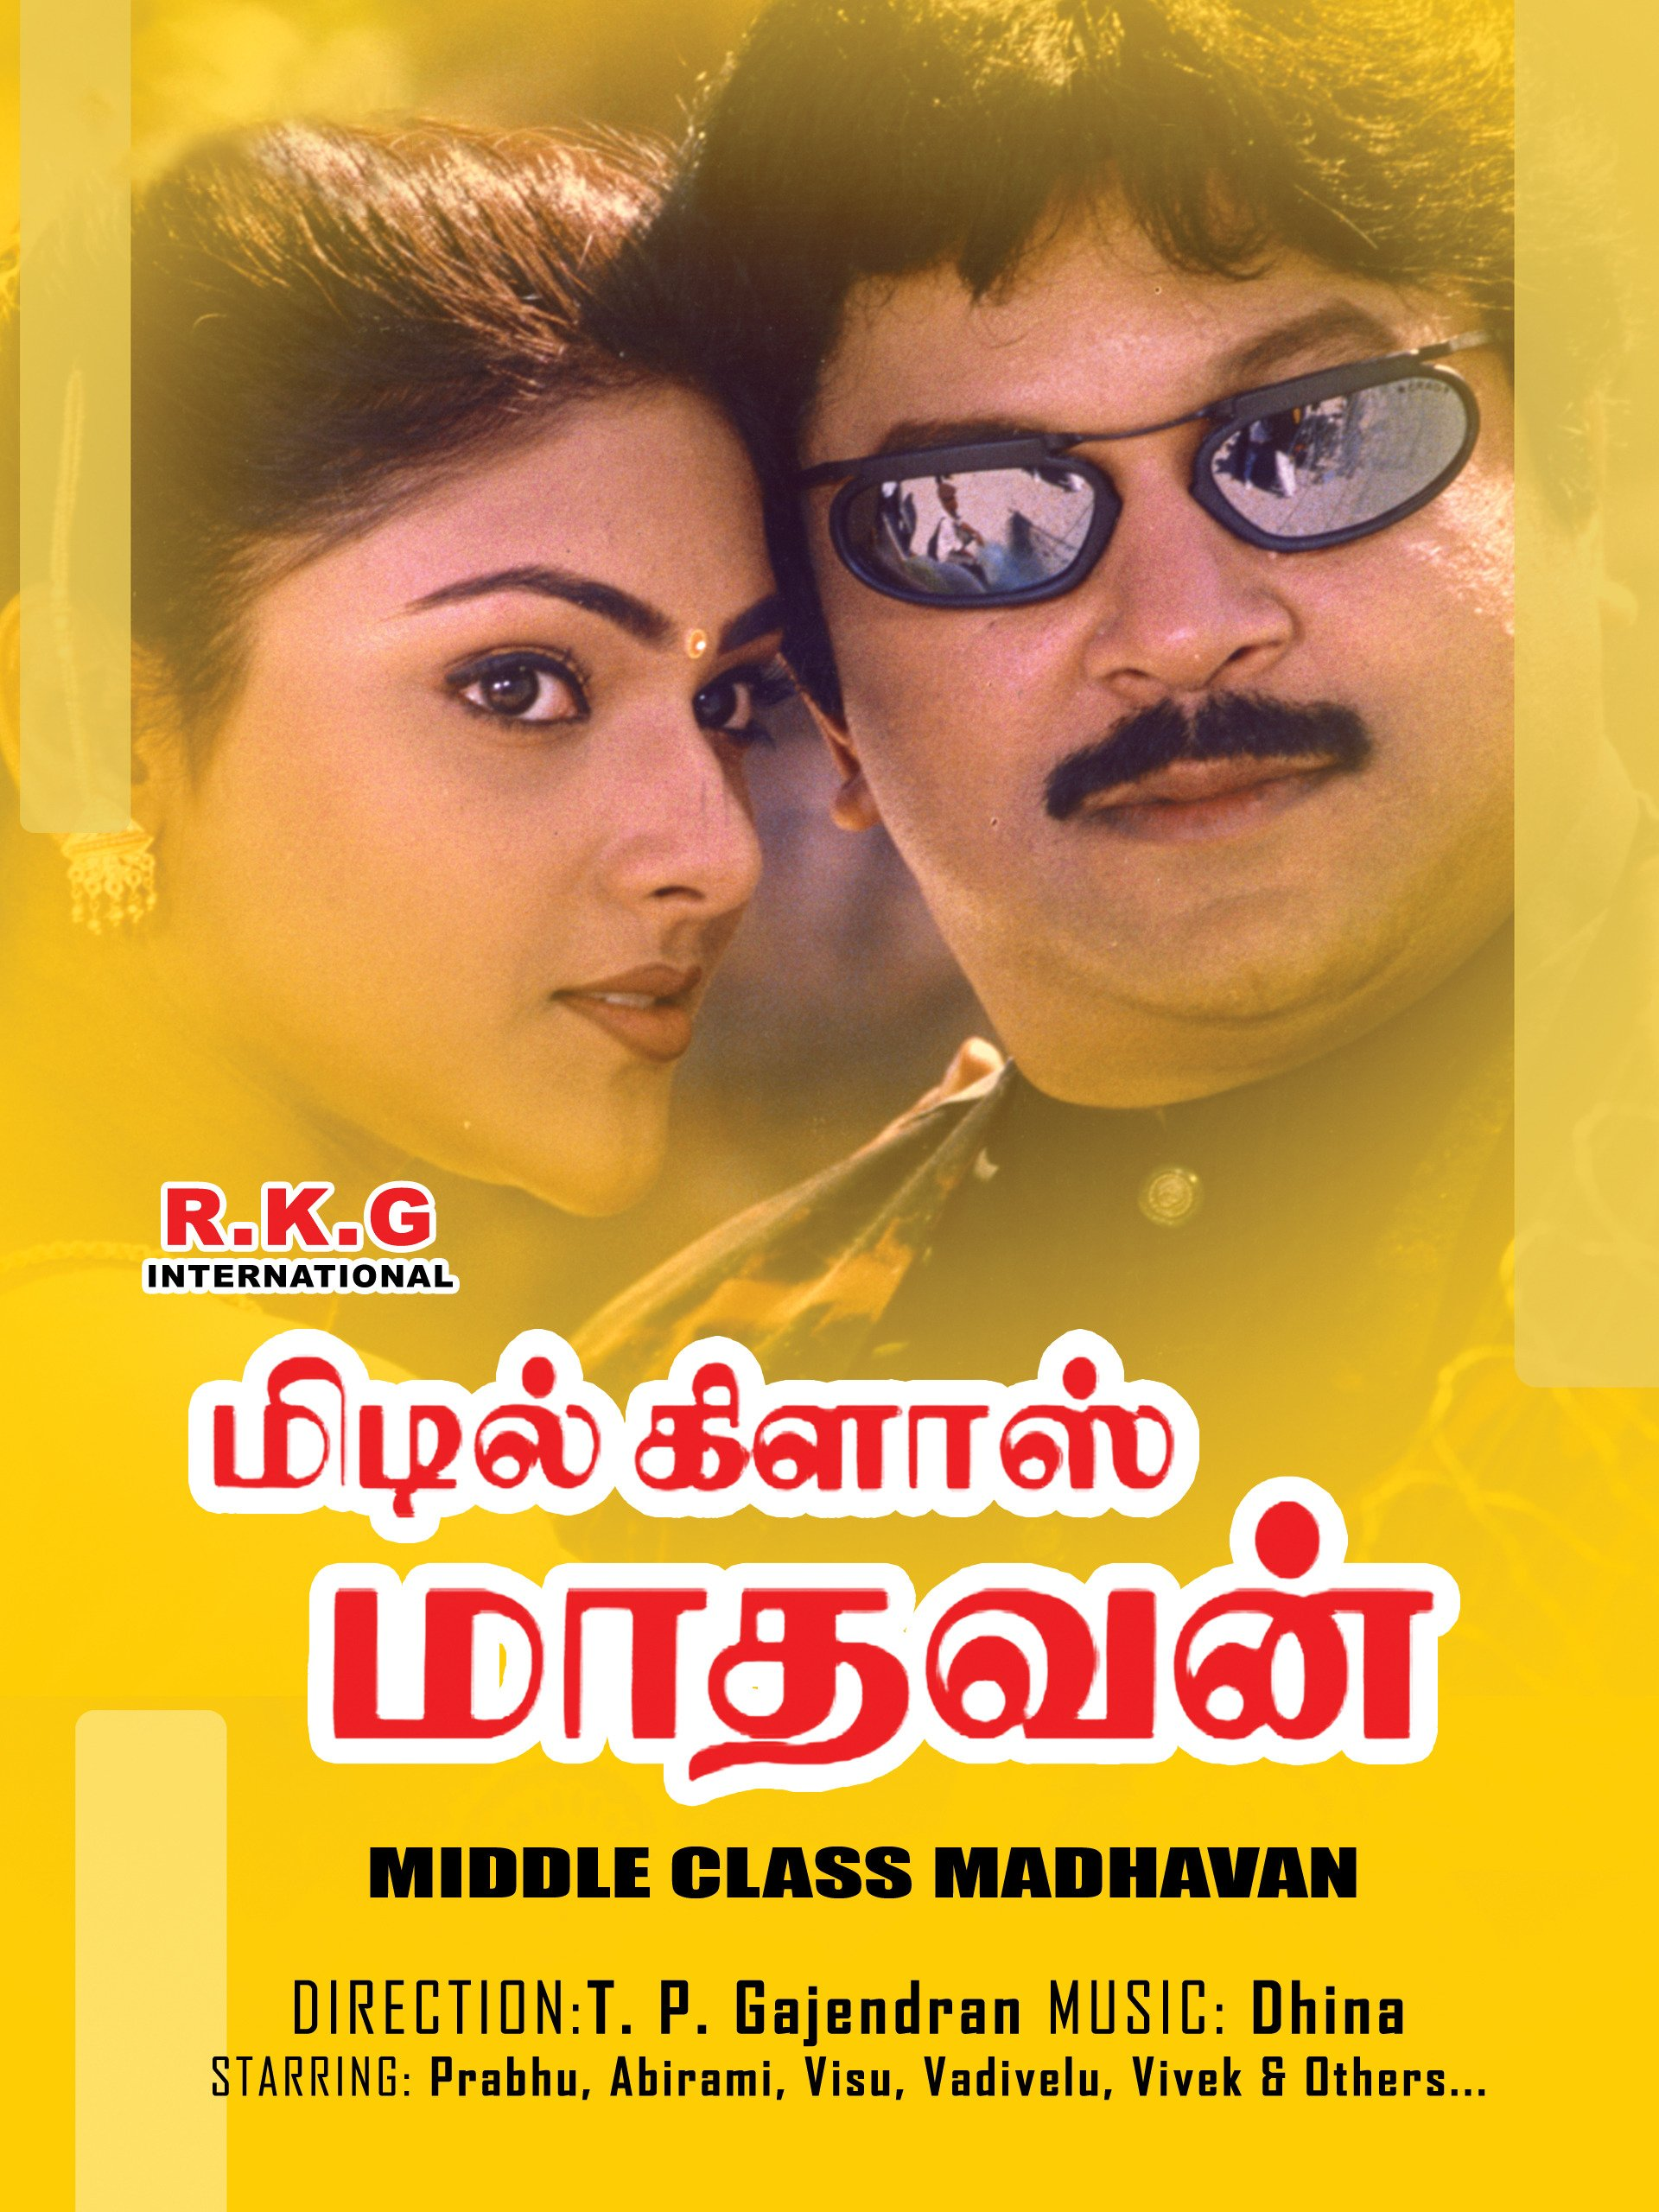 Middle class madhavan compromise comedy youtube.